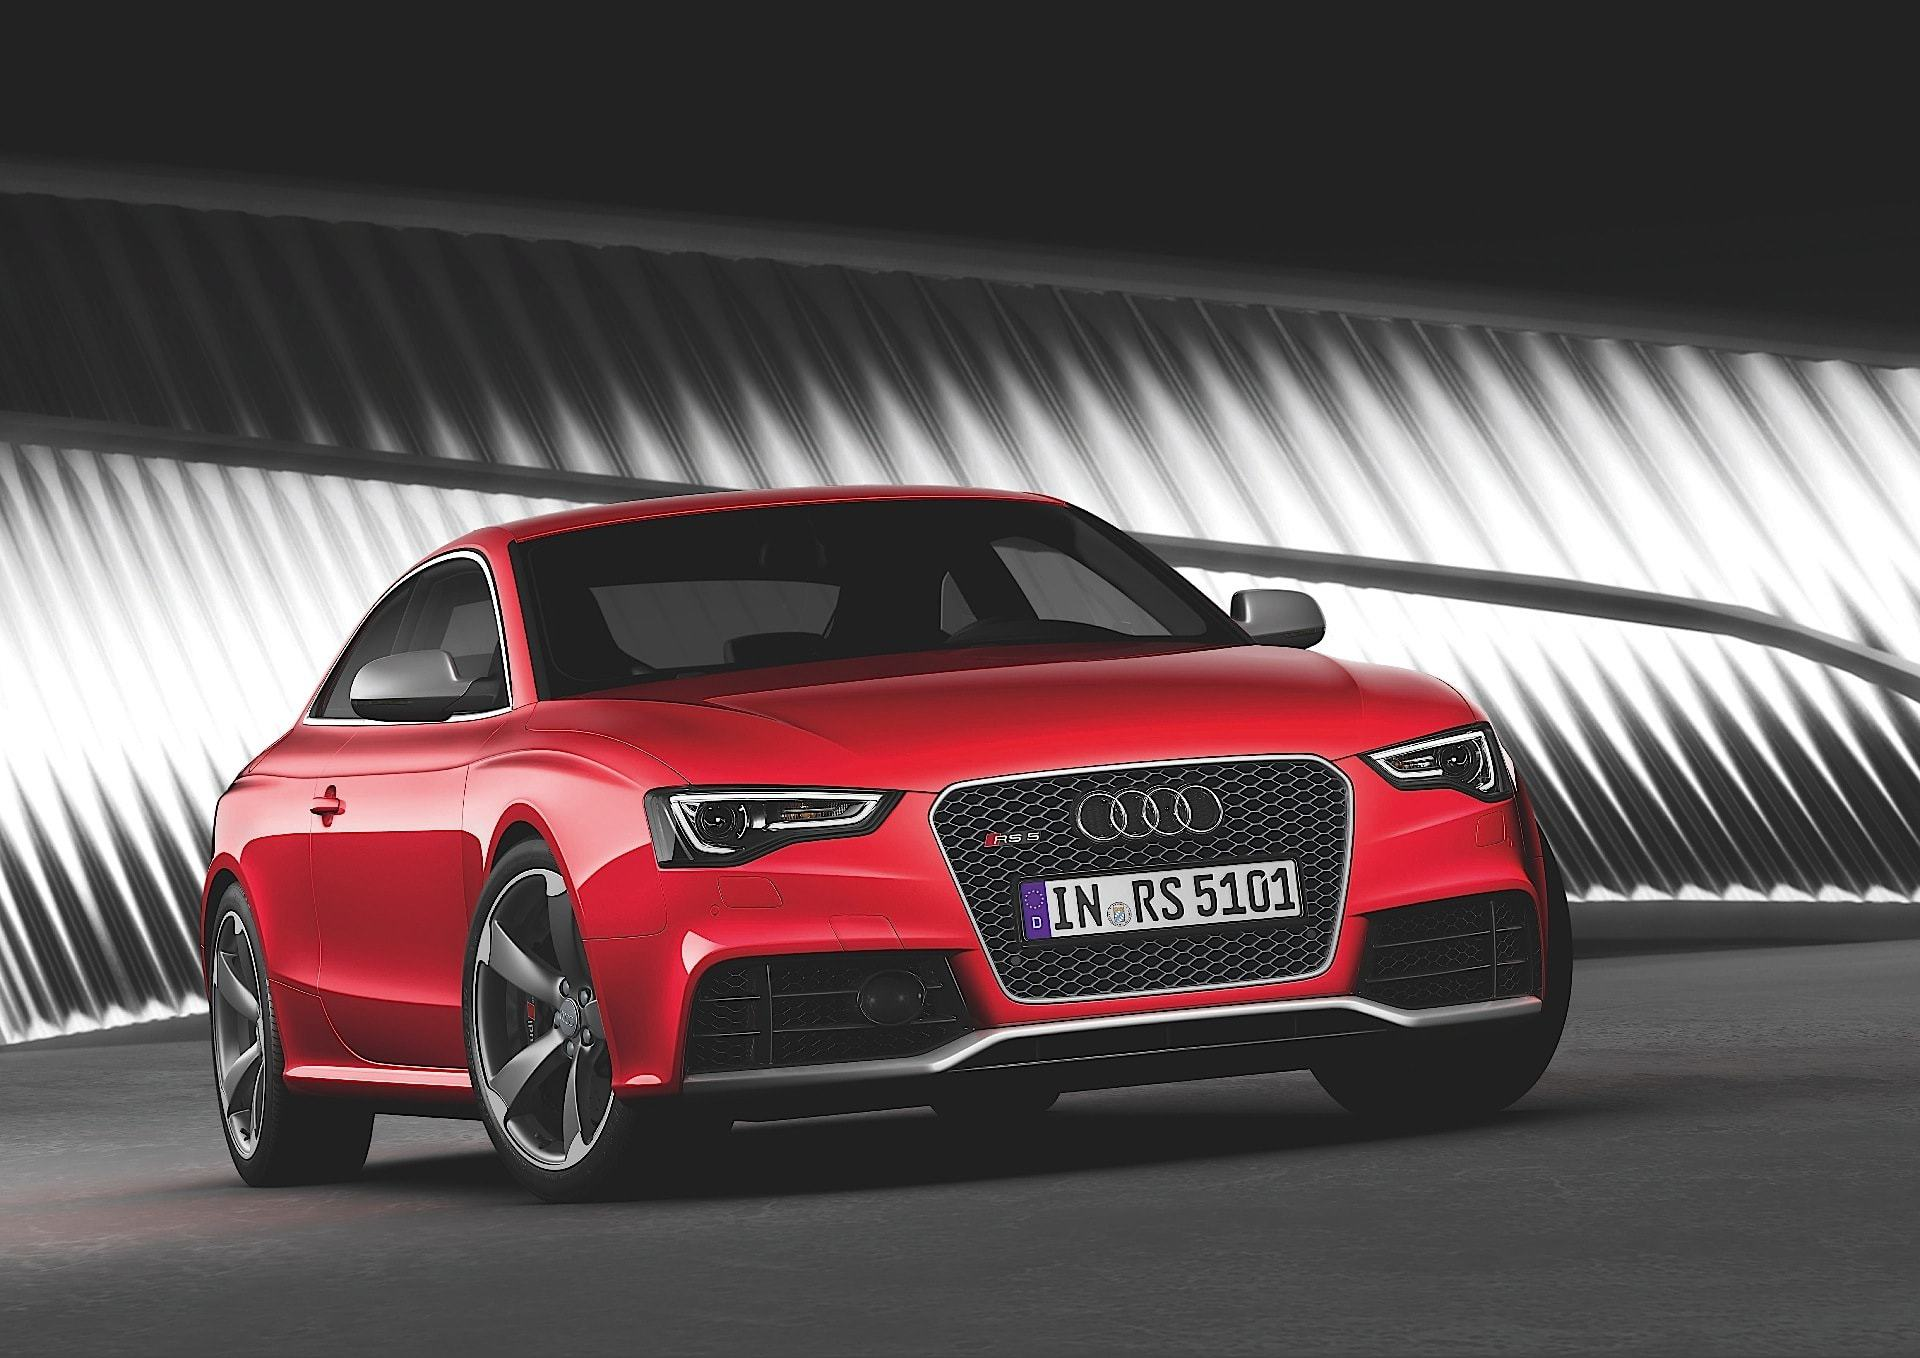 Audi RS5 Wallpapers